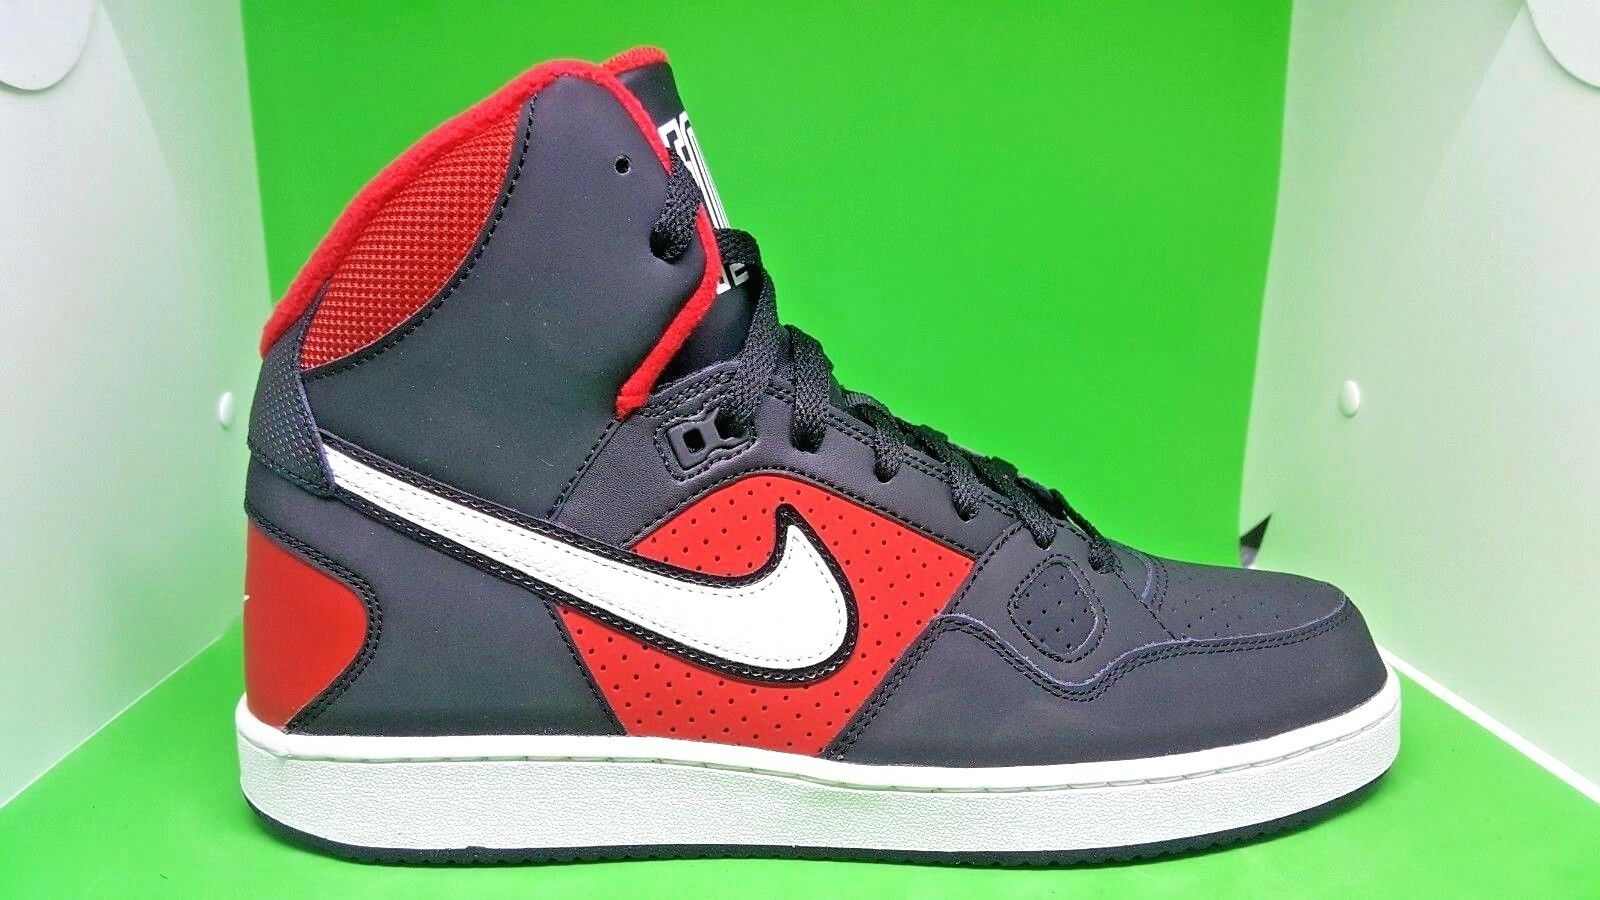 Nike Son Of Force Basketball Shoes University  Red Black White 616281-018